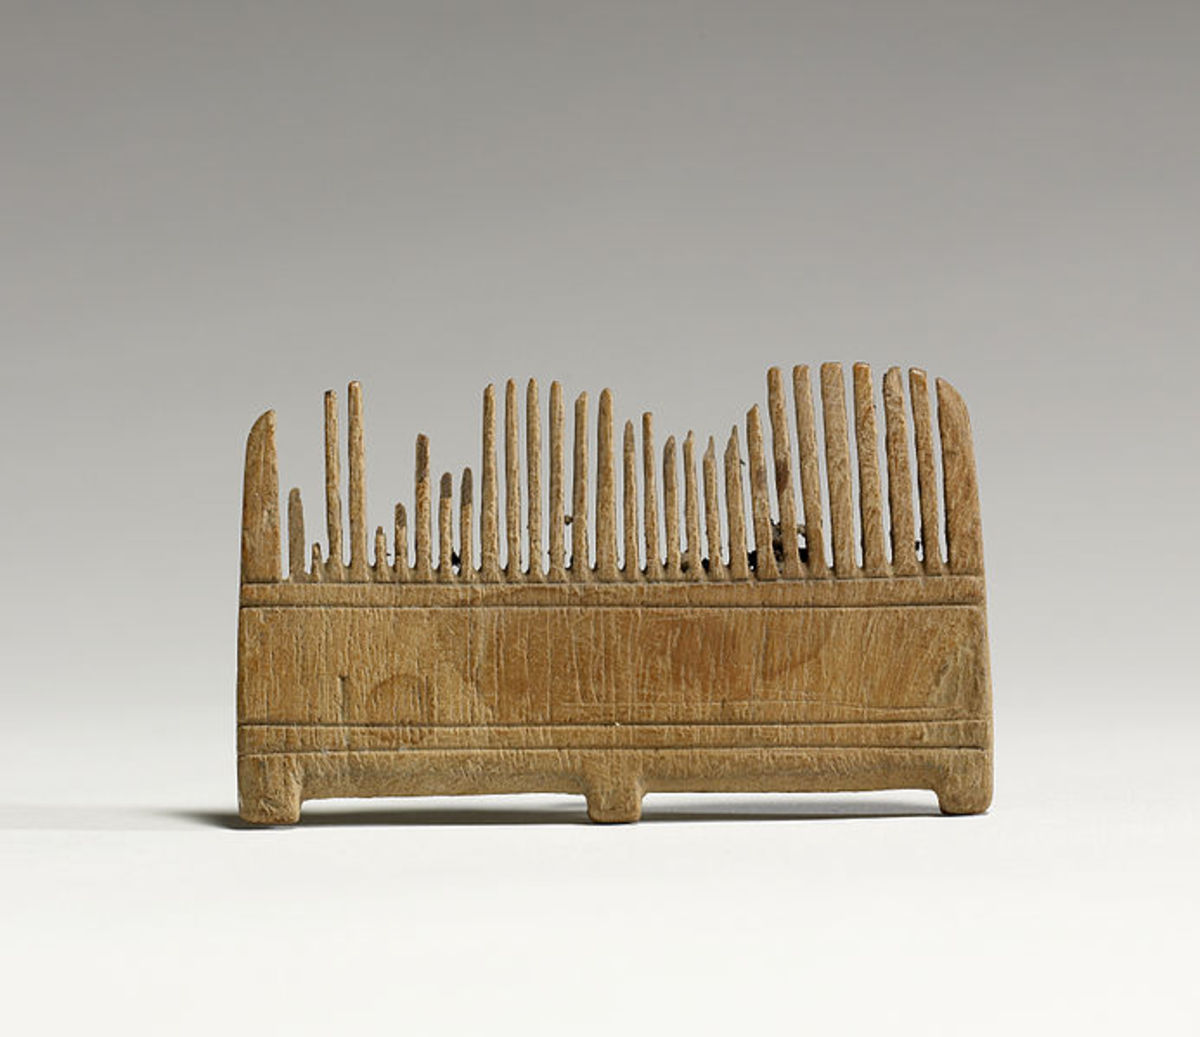 Wooden comb from the same era.